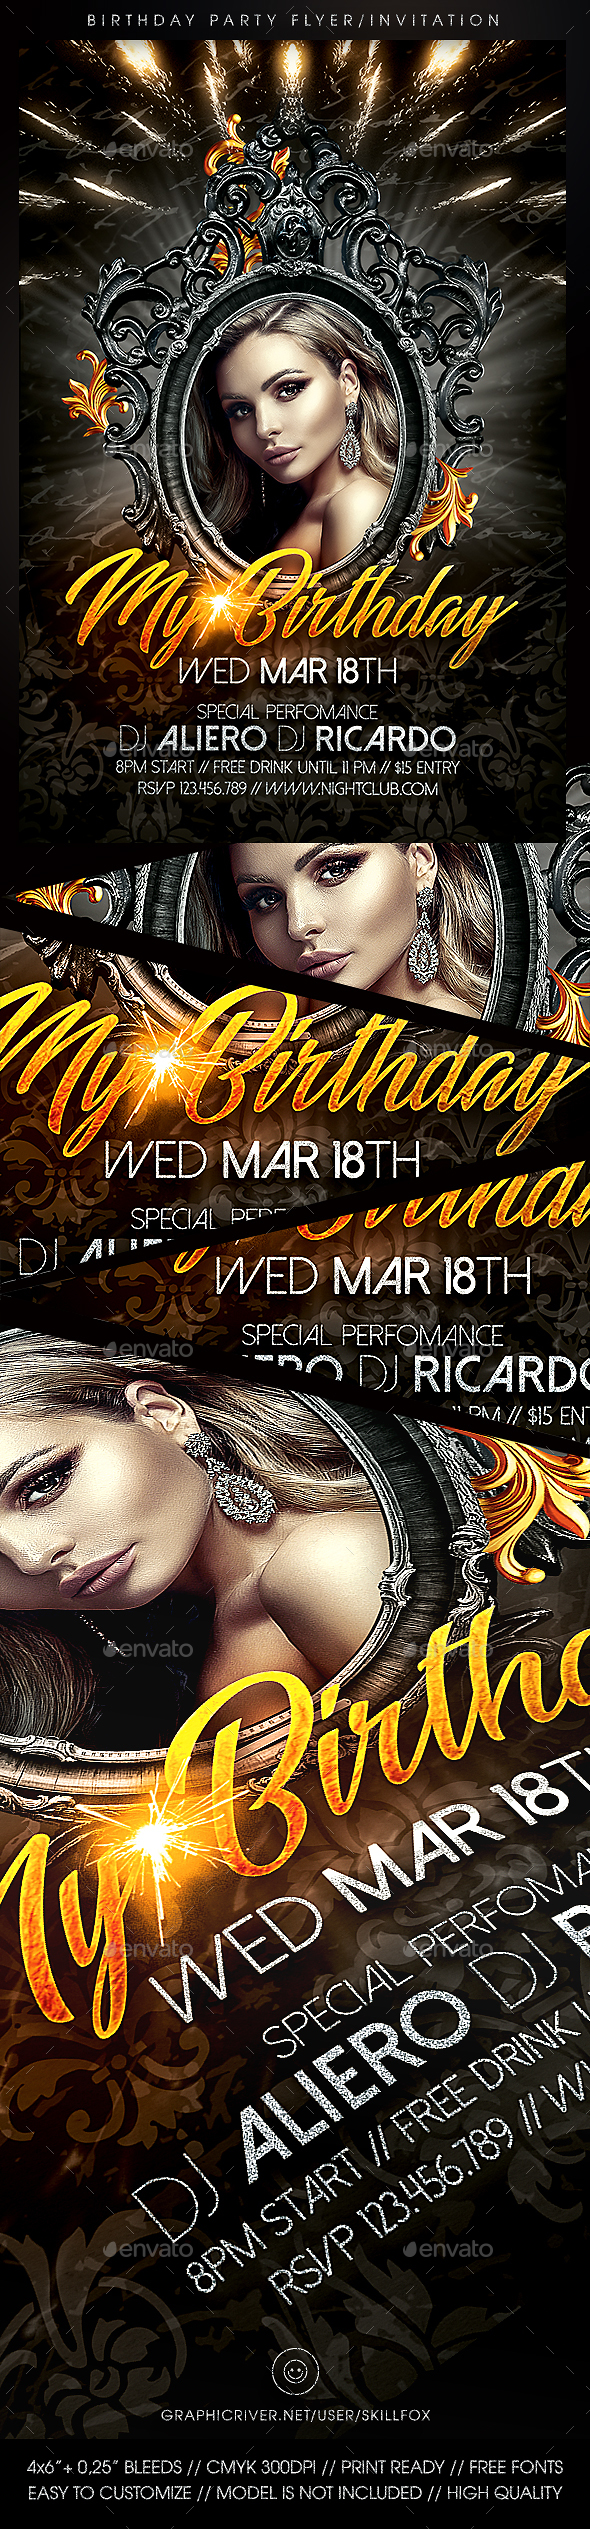 Birthday Party | Invitation Flyer Template - Events Flyers